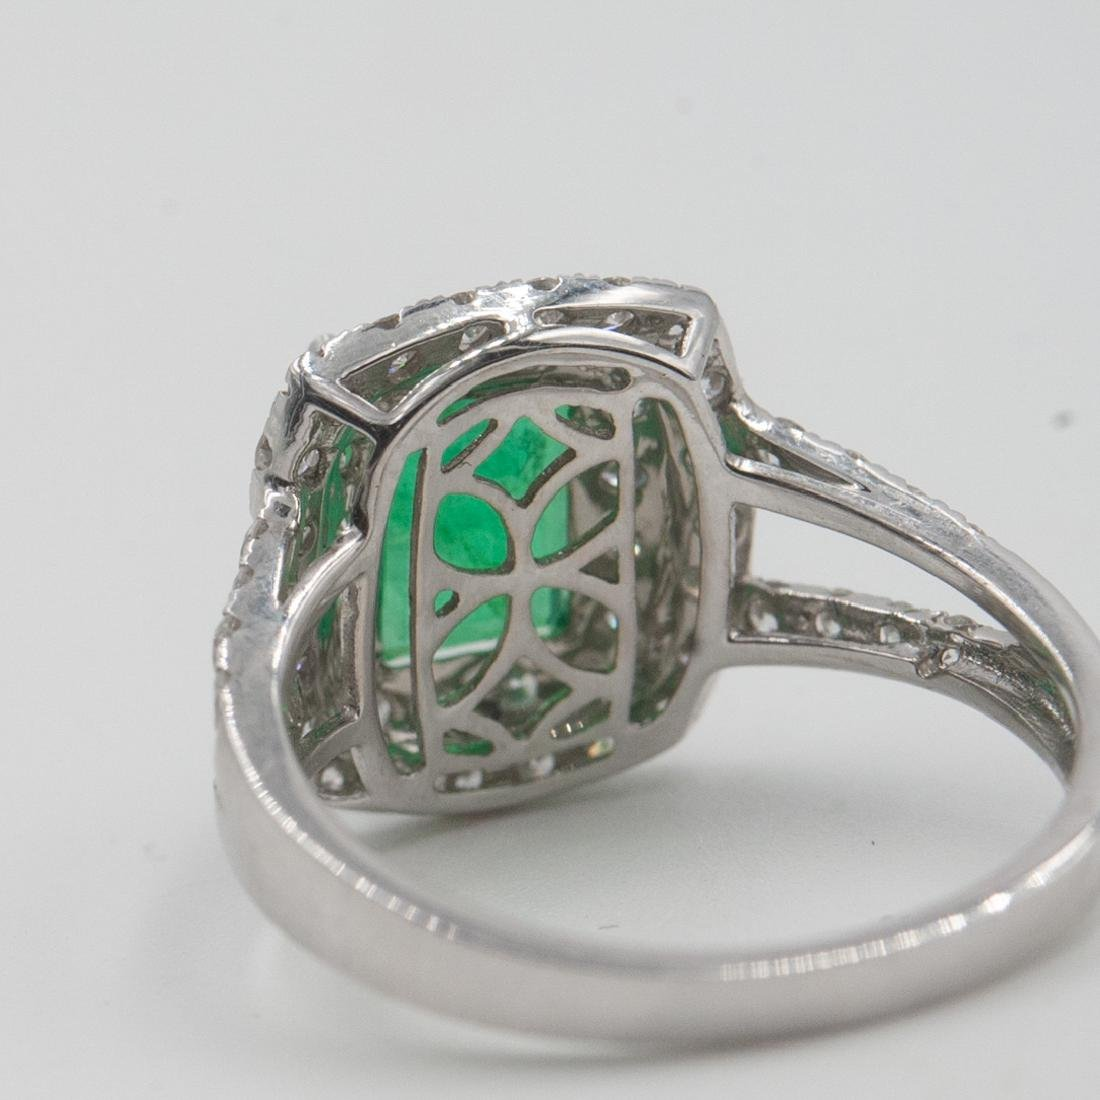 18k Gold, Emerald and Diamond Ring - 3